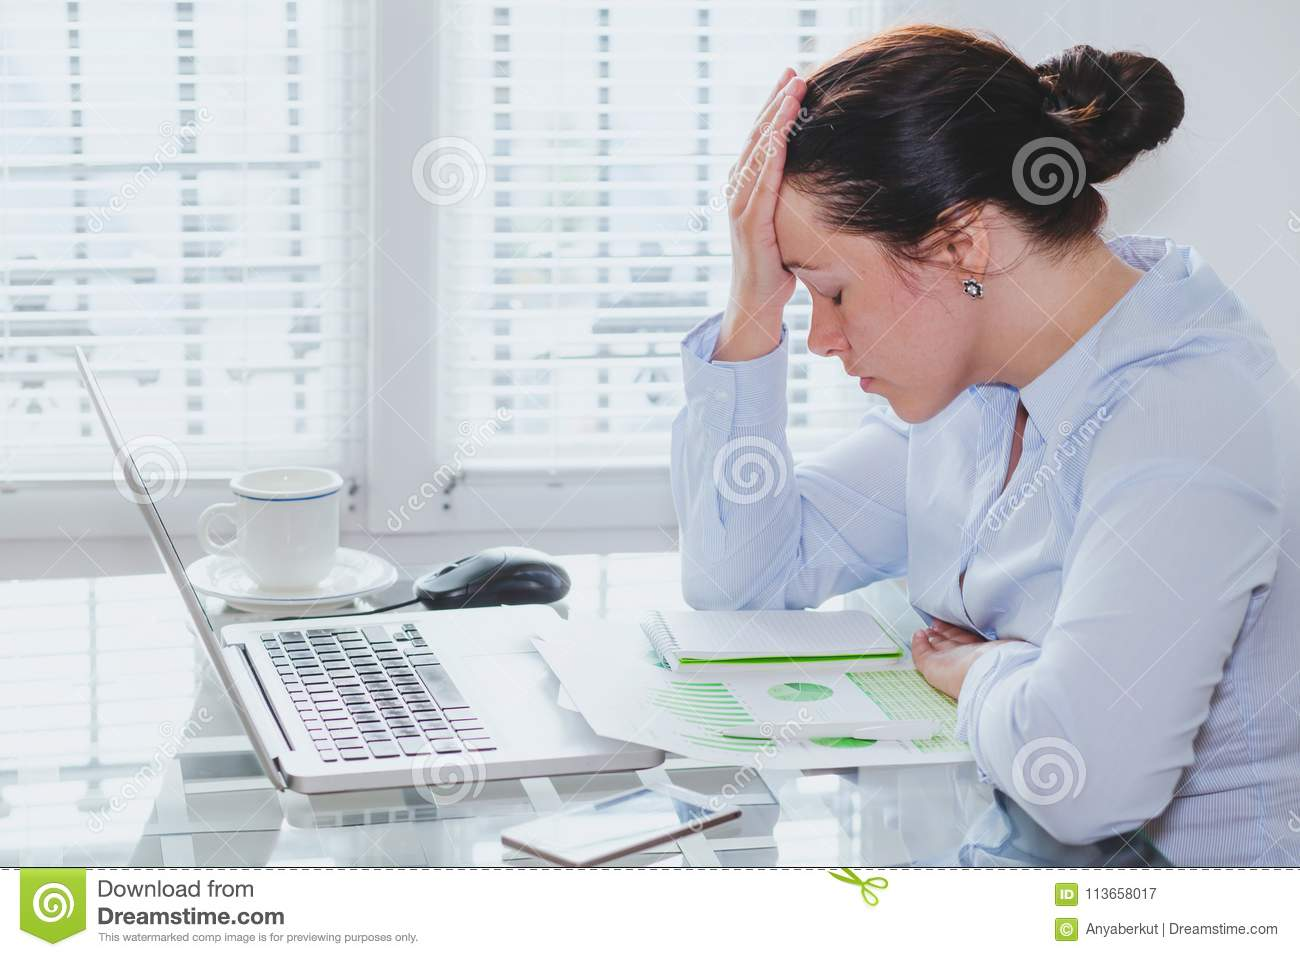 Tired business woman with computer in the office, stress and problems